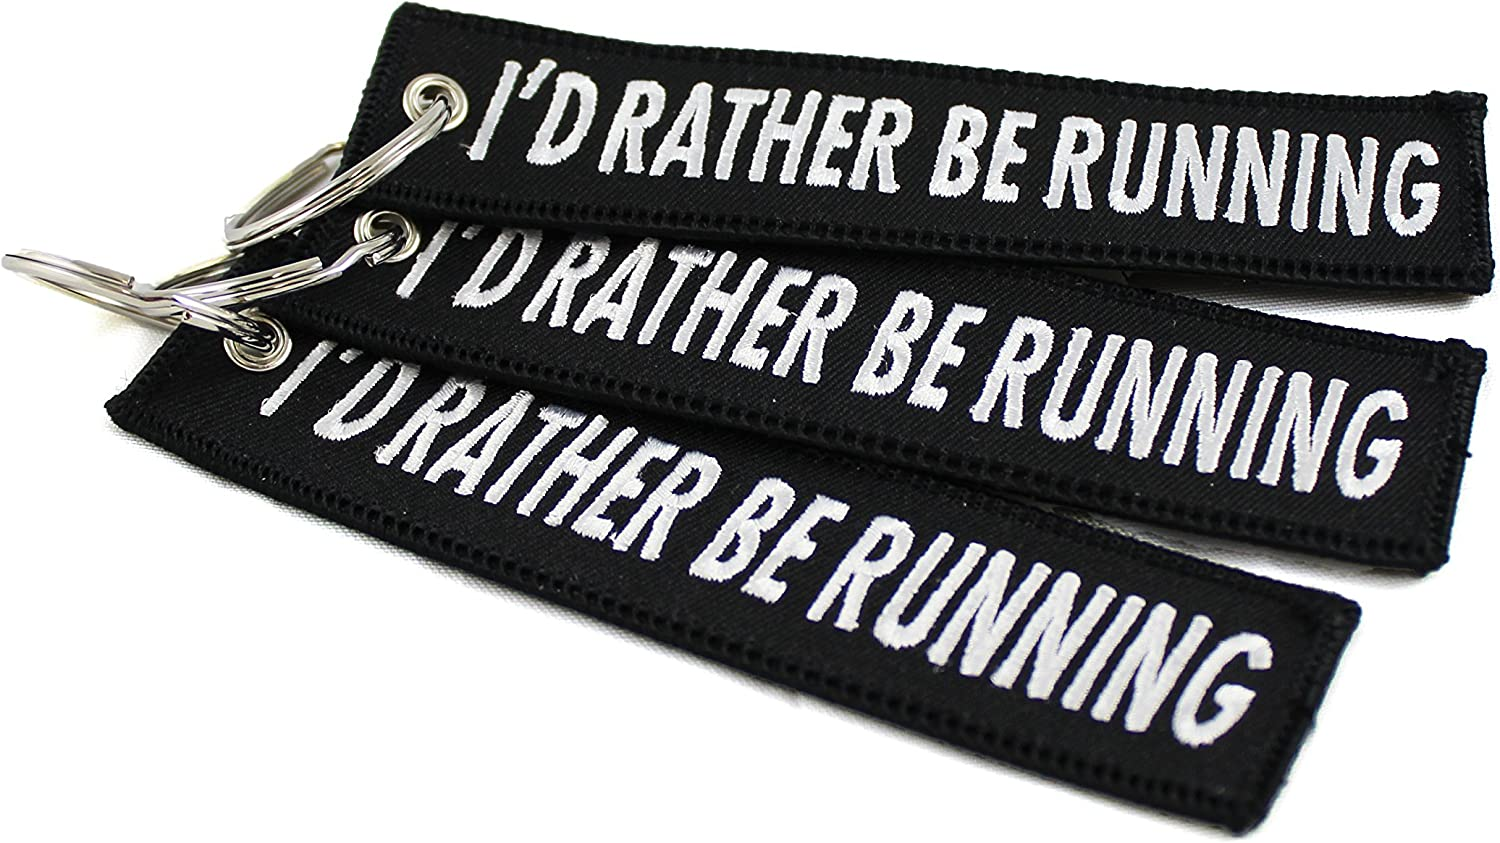 Motorcycles and More! Runners Key Chain For Cars CG KeyTags Id Rather Be Running 1 Scooters ATVs